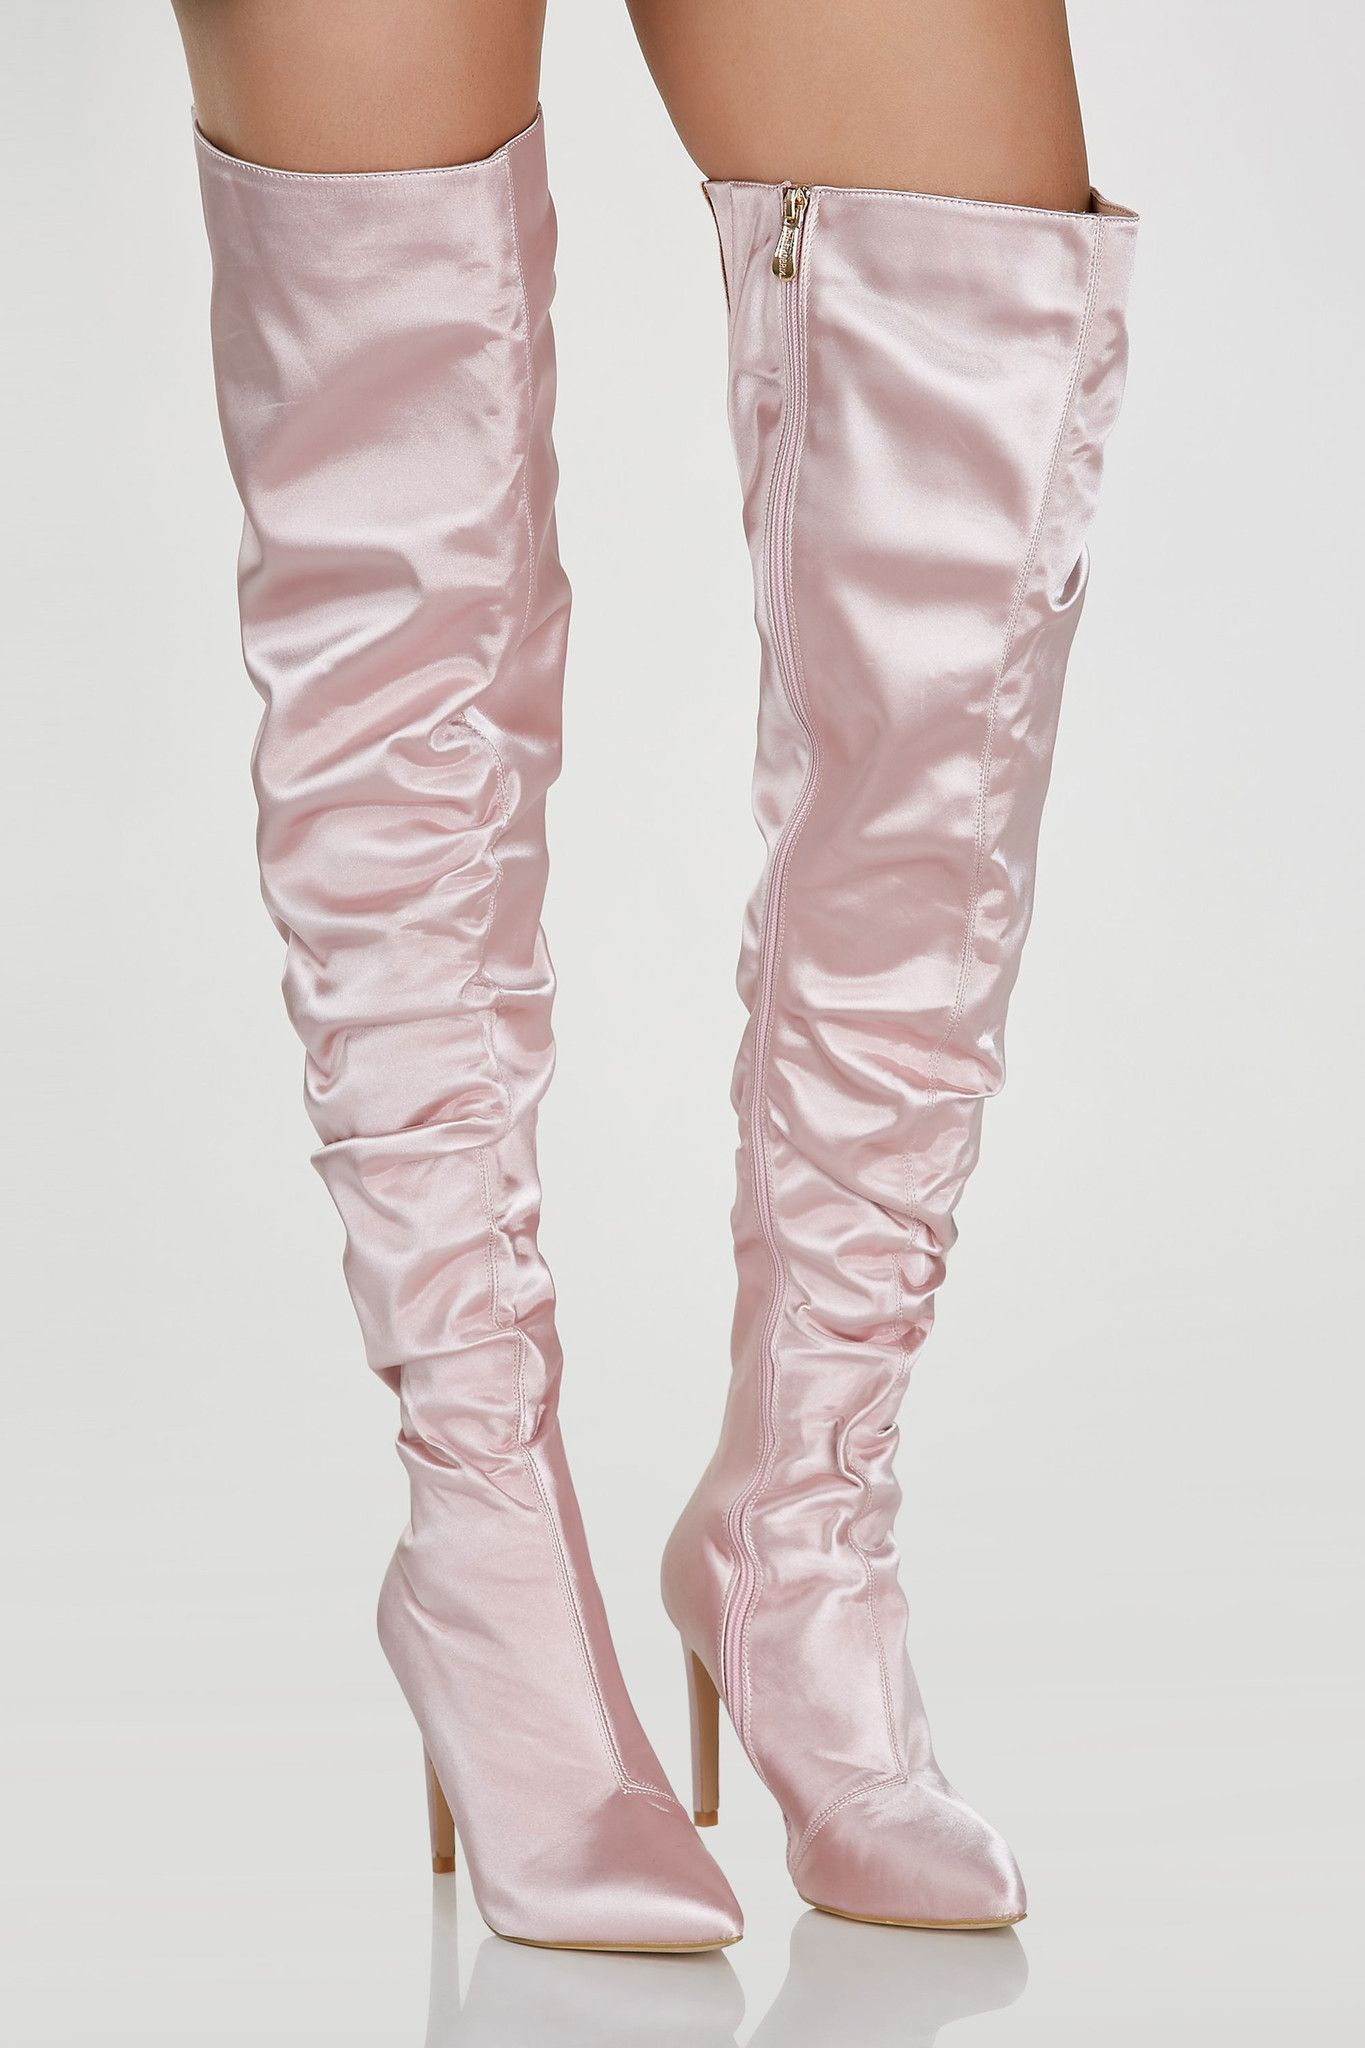 42745570fd Smooth satin thigh high boots with stiletto heels. Slight ruched effect  with side zip closure and pointed toe finish. - Man made materials -  Imported ...